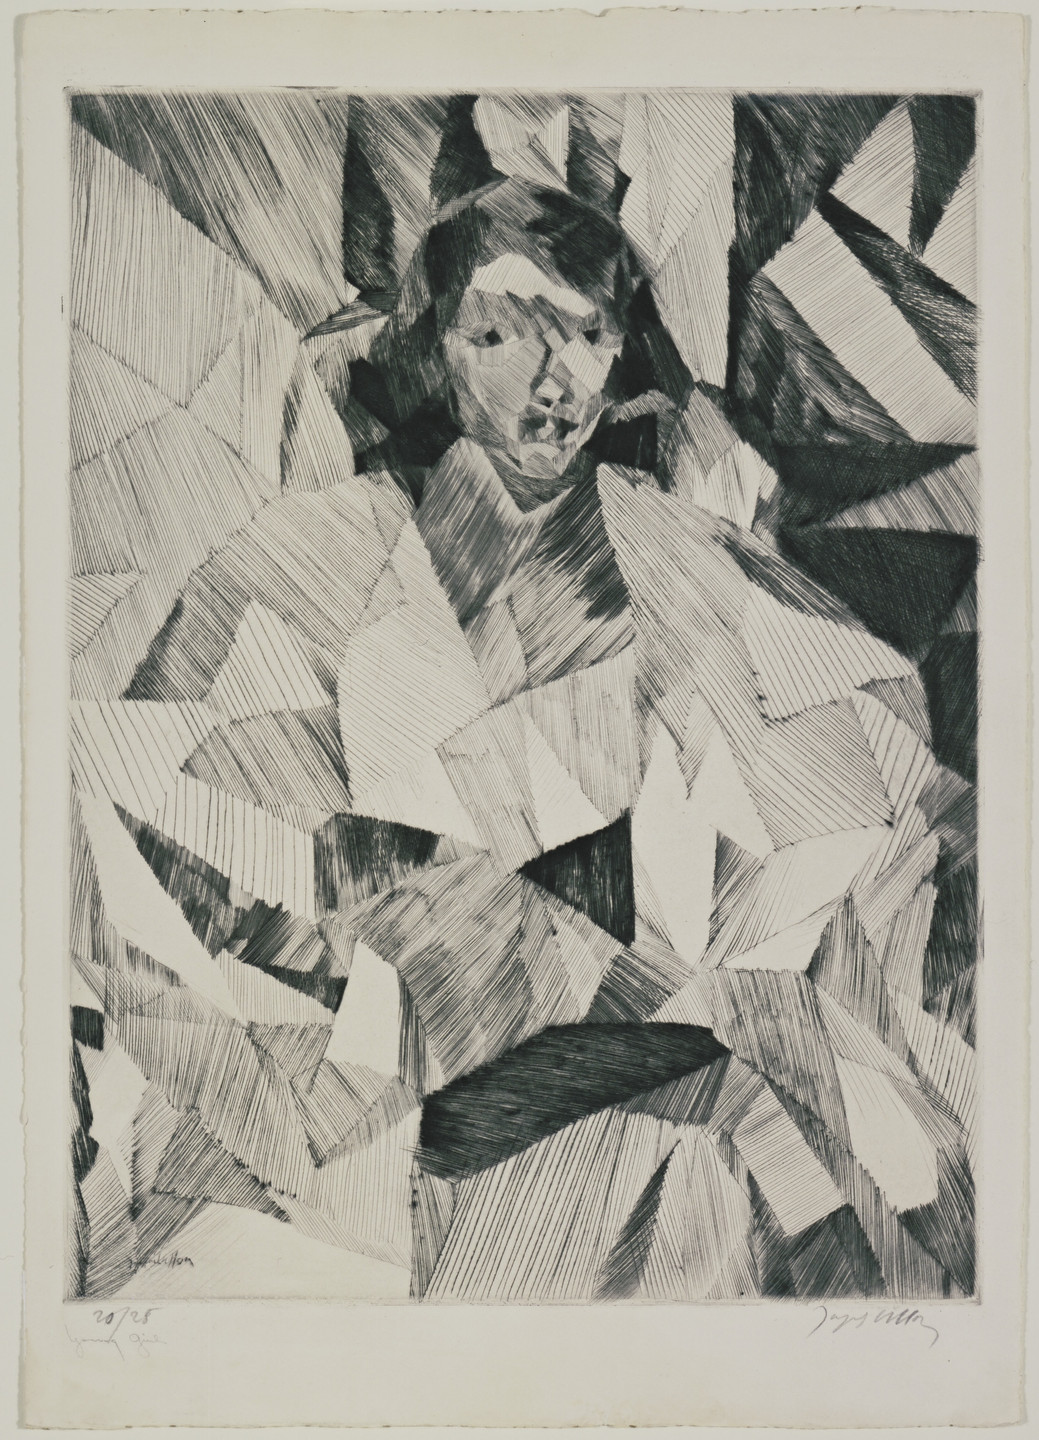 Jacques Villon. Front View of Yvonne D. (Yvonne D. de face). 1913